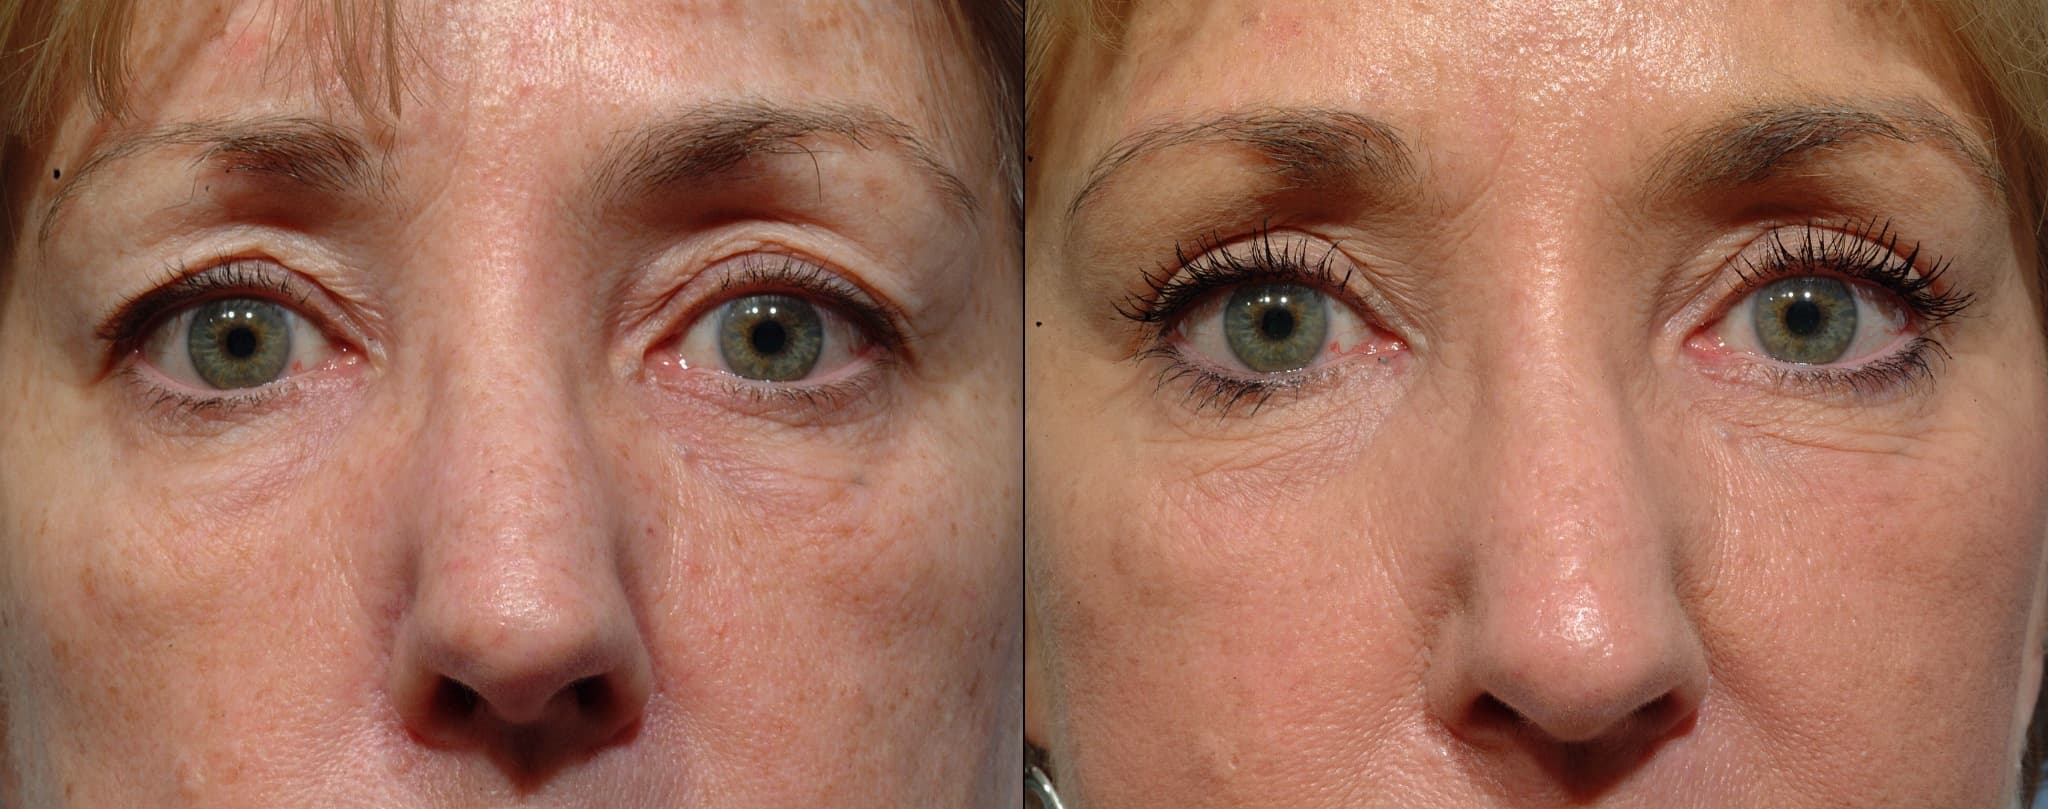 Eyelid Plastic Surgery Before And After 1